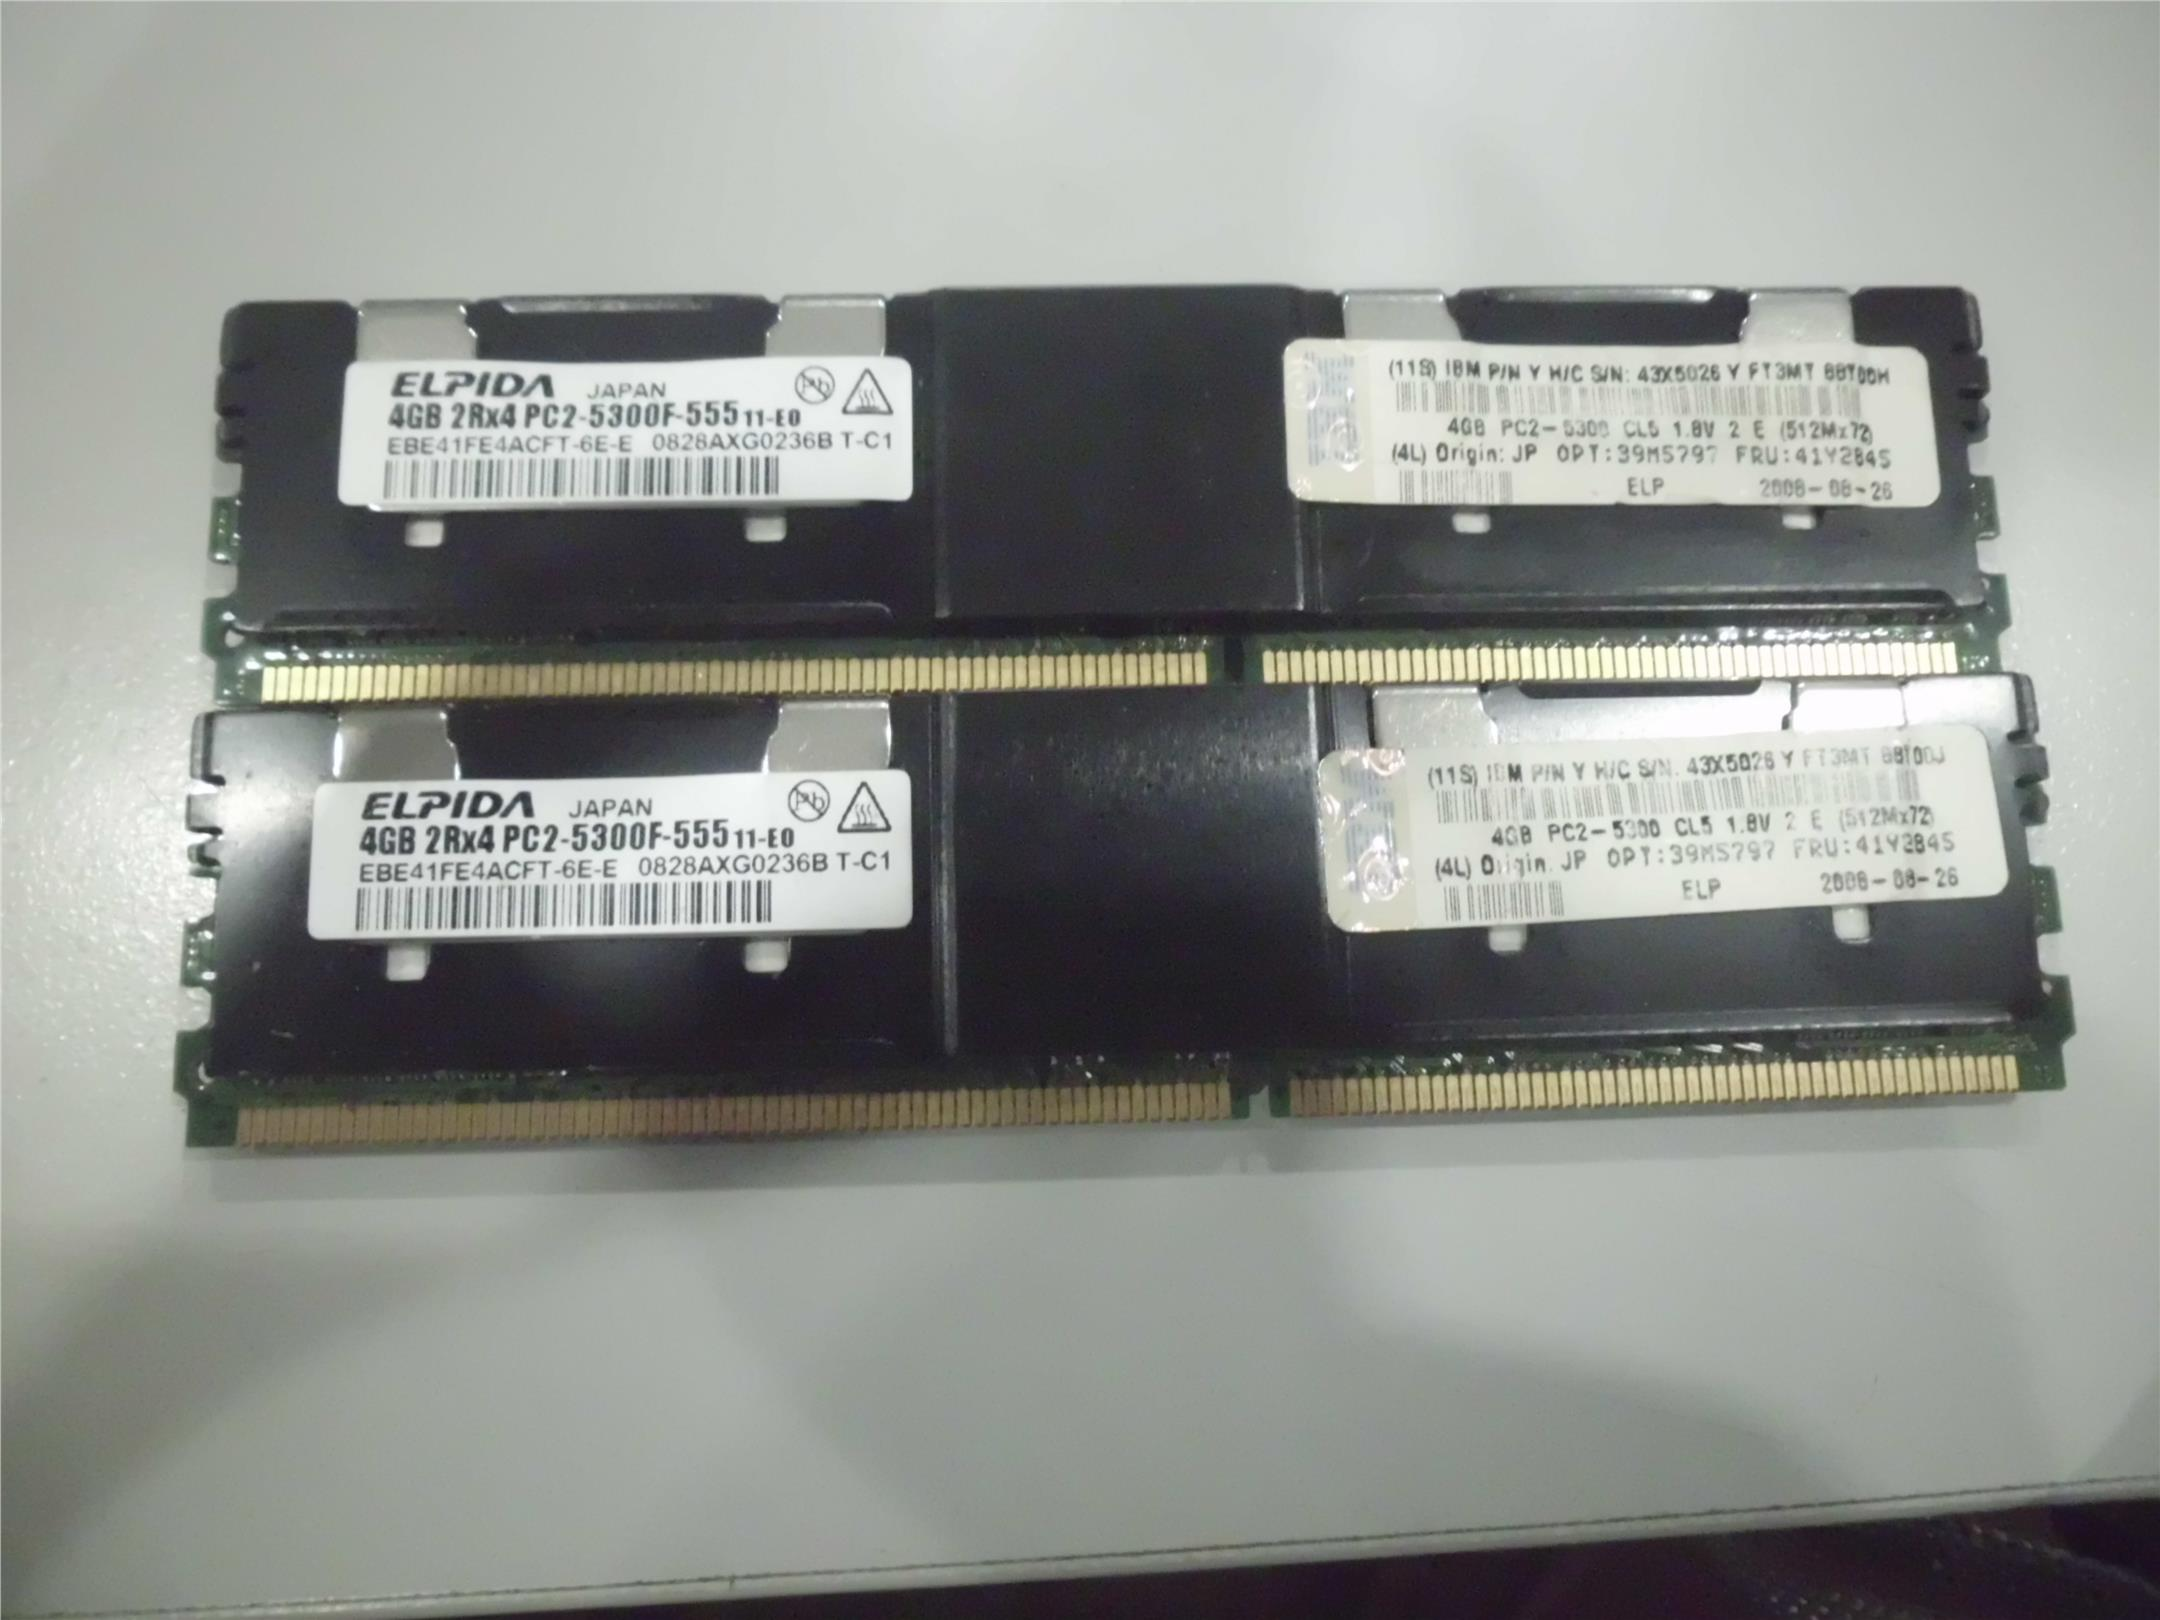 HP IBM DELL G5 SERVER RAM MERMORY DDR2 5300F ECC USED 4GBX2